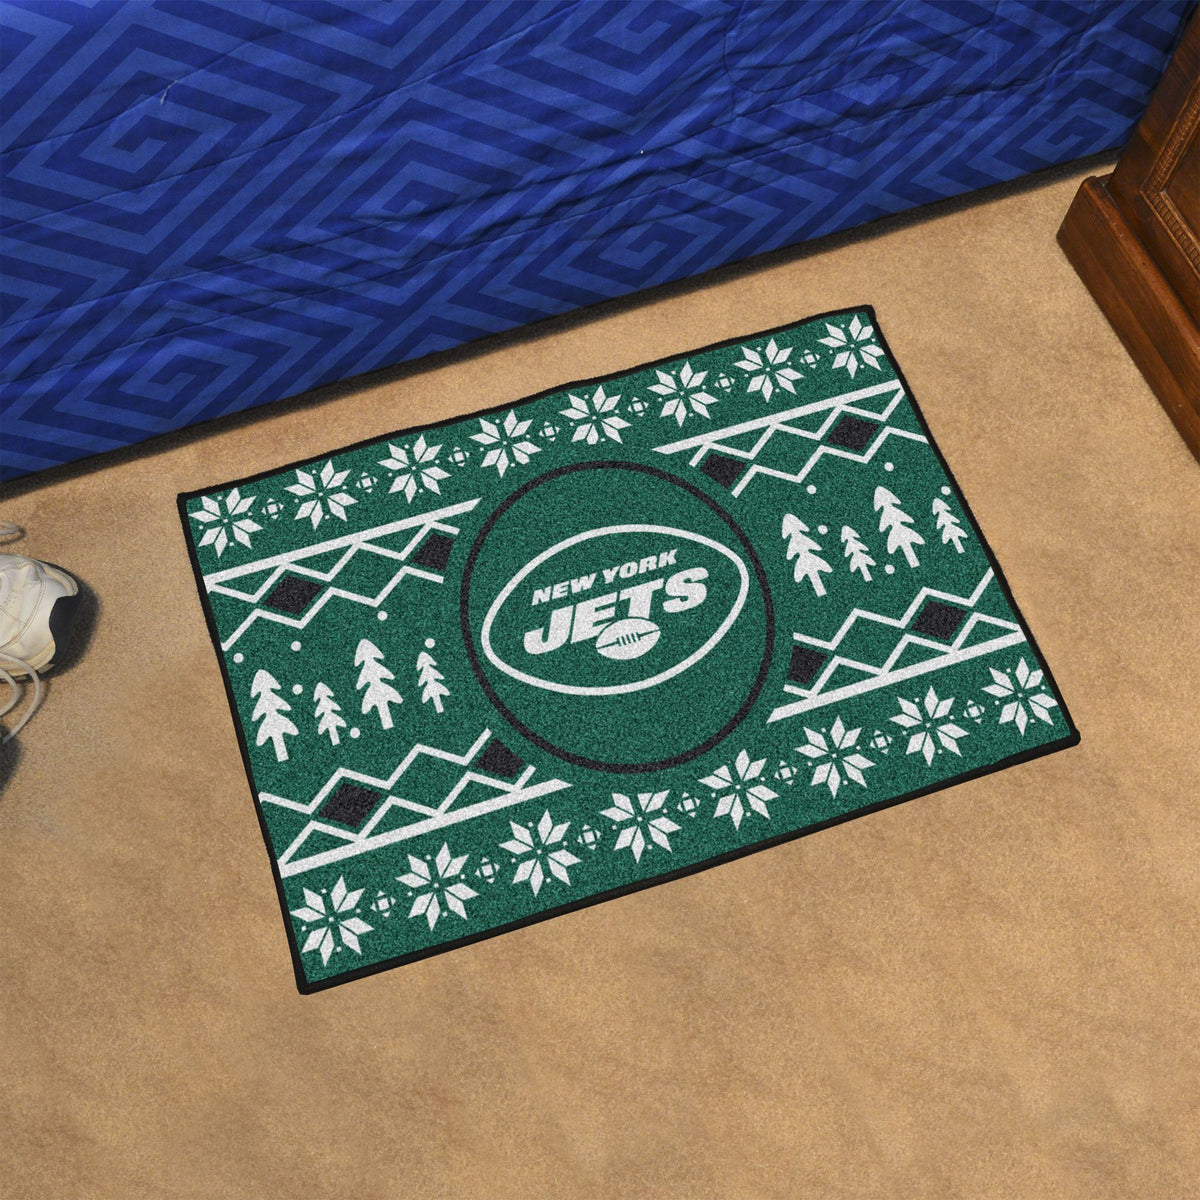 "NFL - Holiday Sweater Starter Mat, 19"" x 30"" NFL Mats, Rectangular Mats, Holiday Sweater Starter Mat, NFL, Home Fan Mats New York Jets"